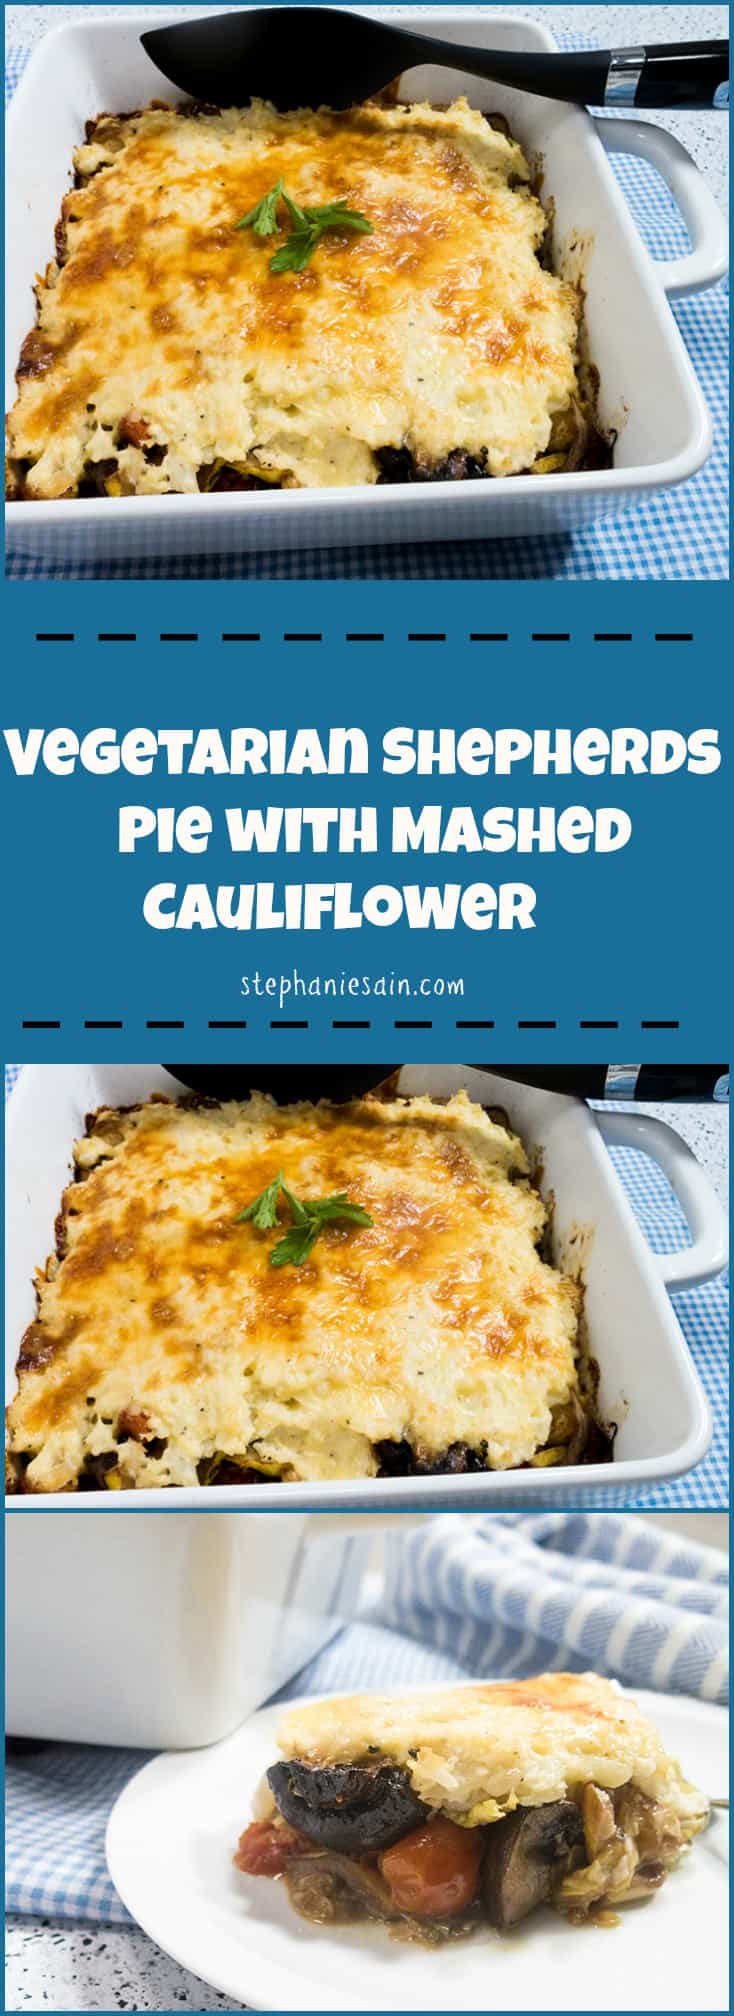 Vegetarian Shepherds Pie with Mashed Cauliflower is packed with marinated veggies and then topped with mashed cauliflower. A different version for a family favorite. Gluten Free and Vegetarian.